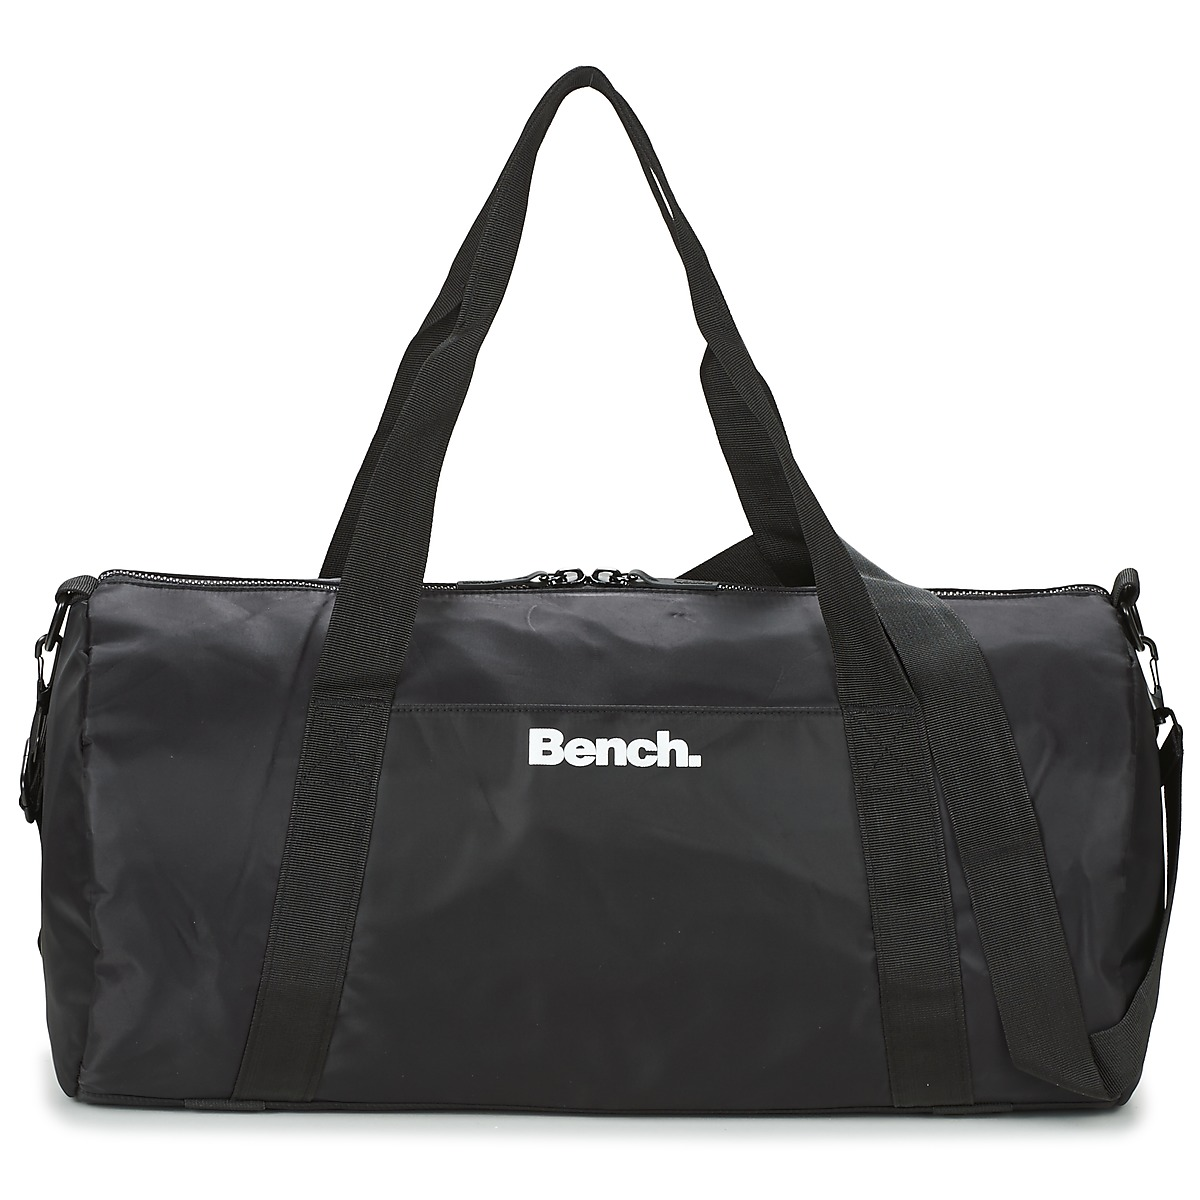 Borsa da sport donna Bench  BROADFIELD GYM BAG  Nero